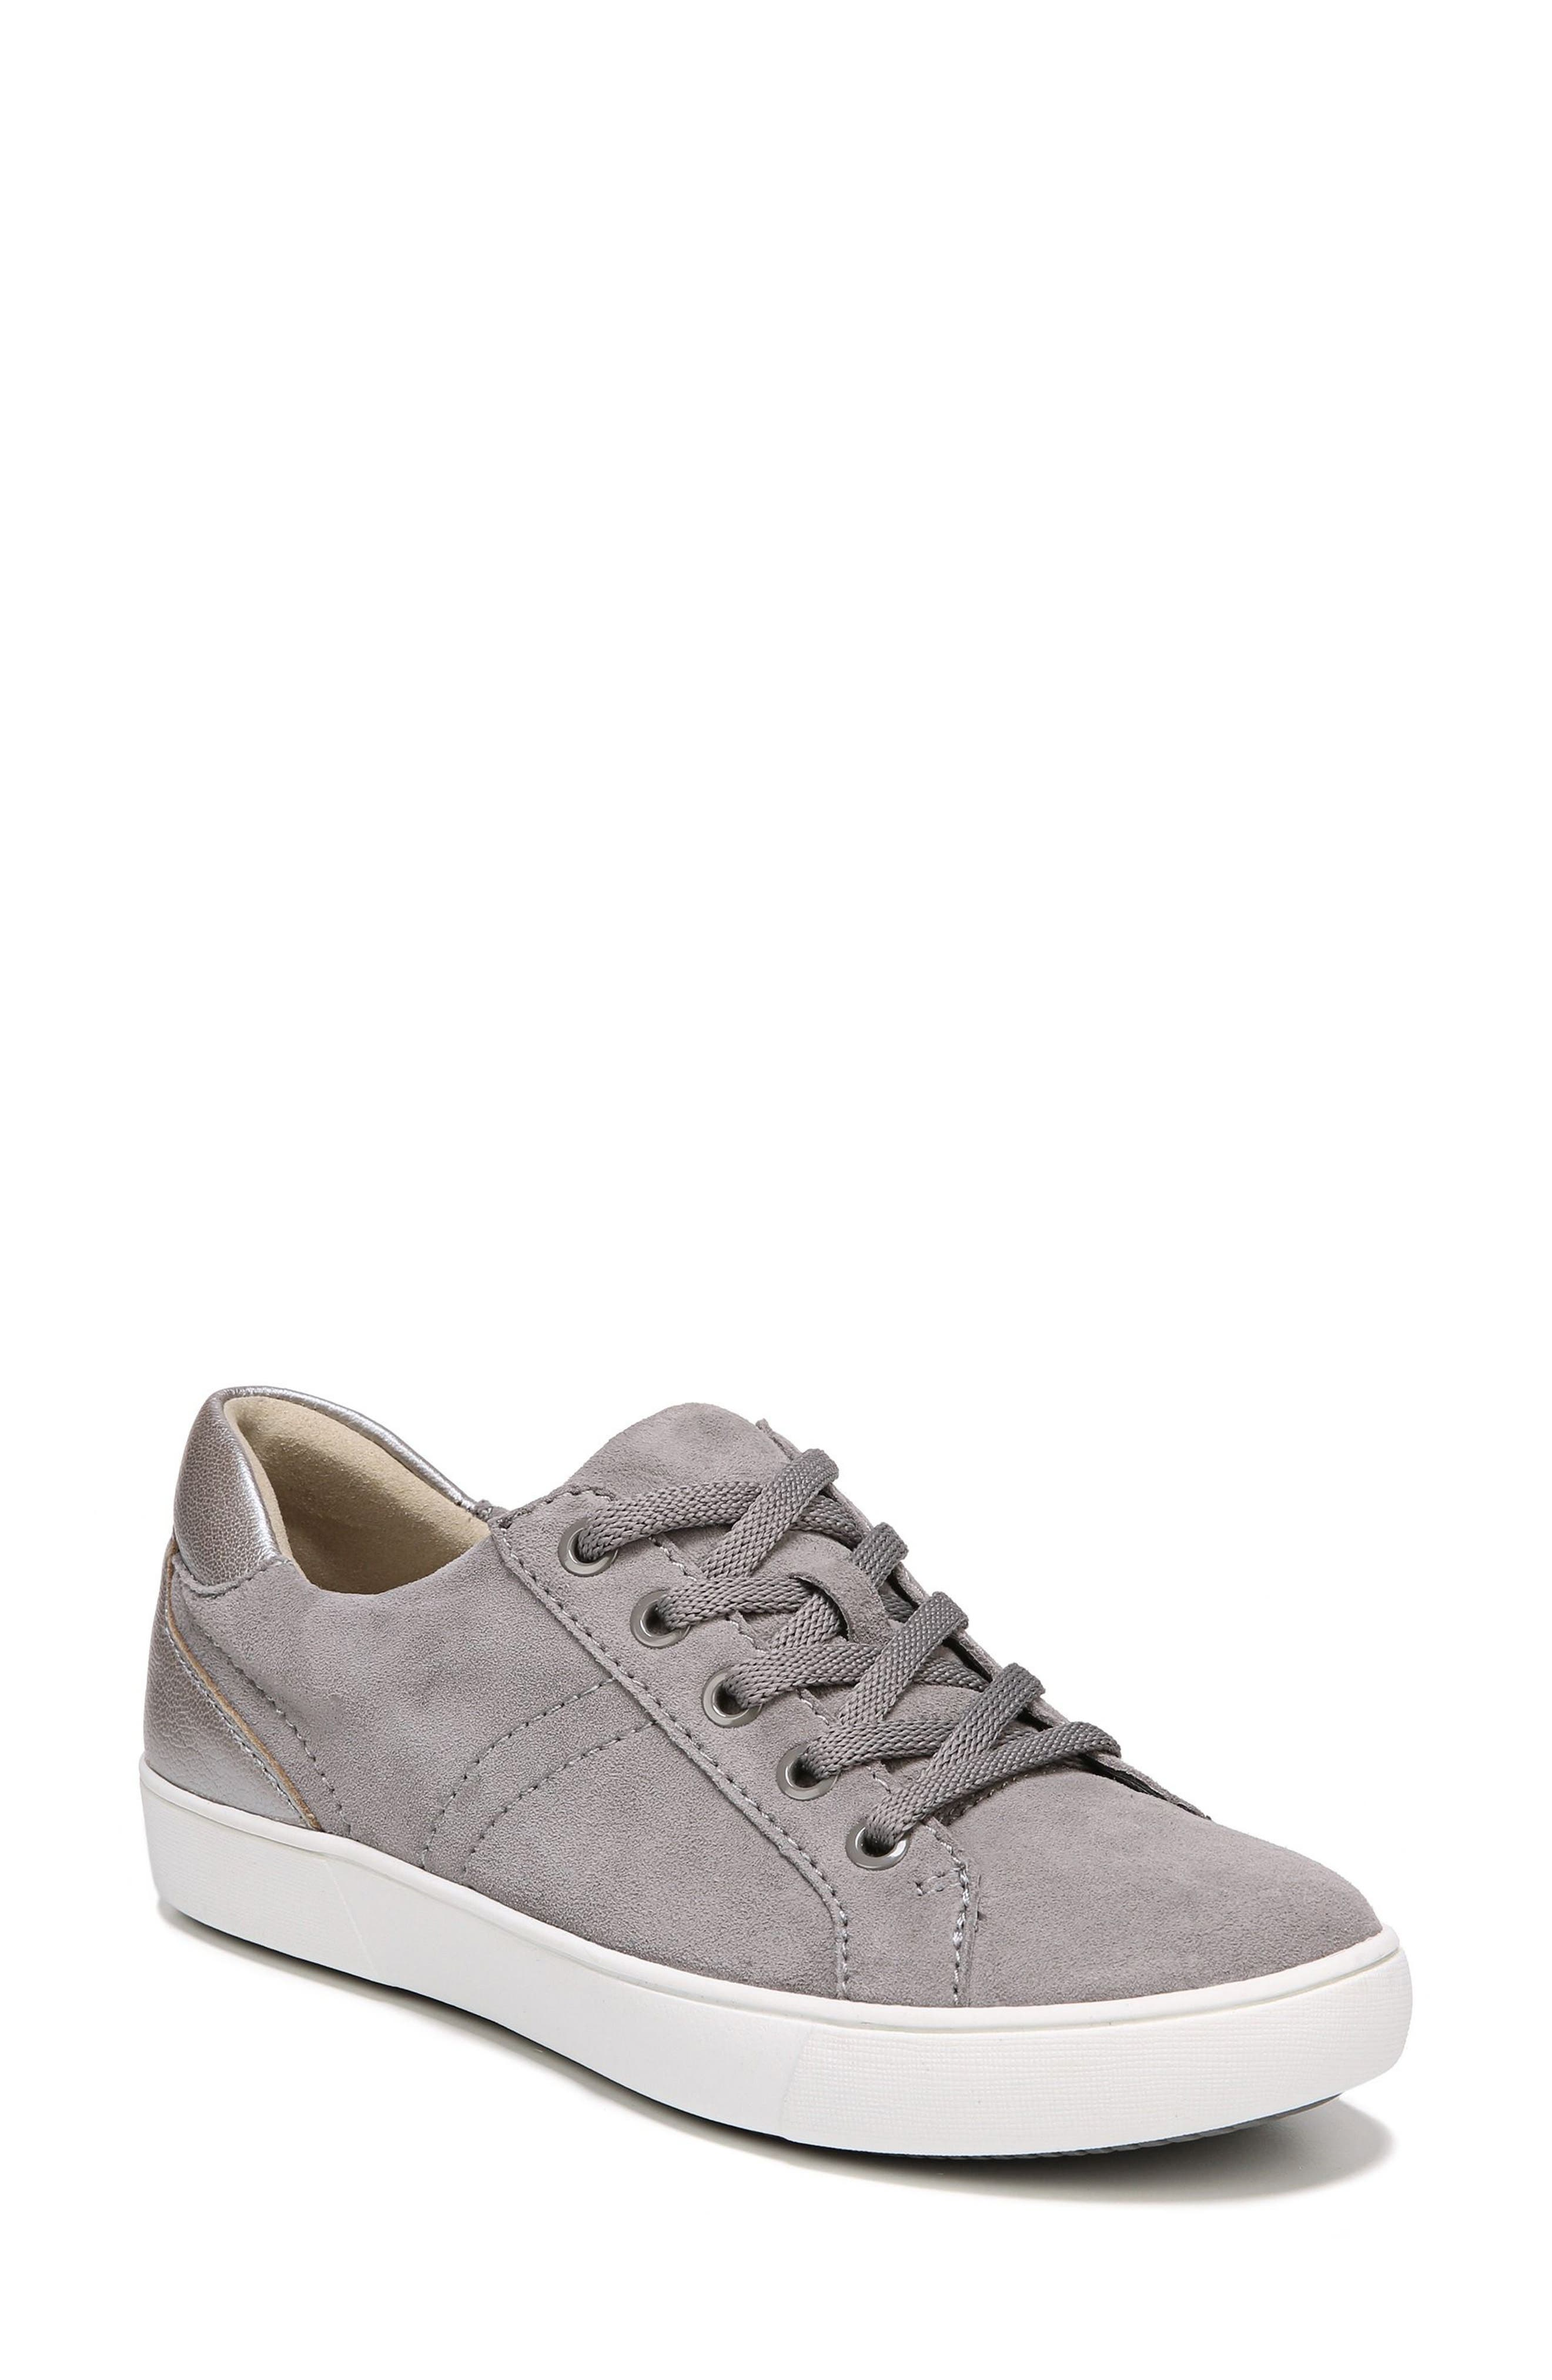 NATURALIZER Morrison Sneaker, Main, color, GREY SUEDE